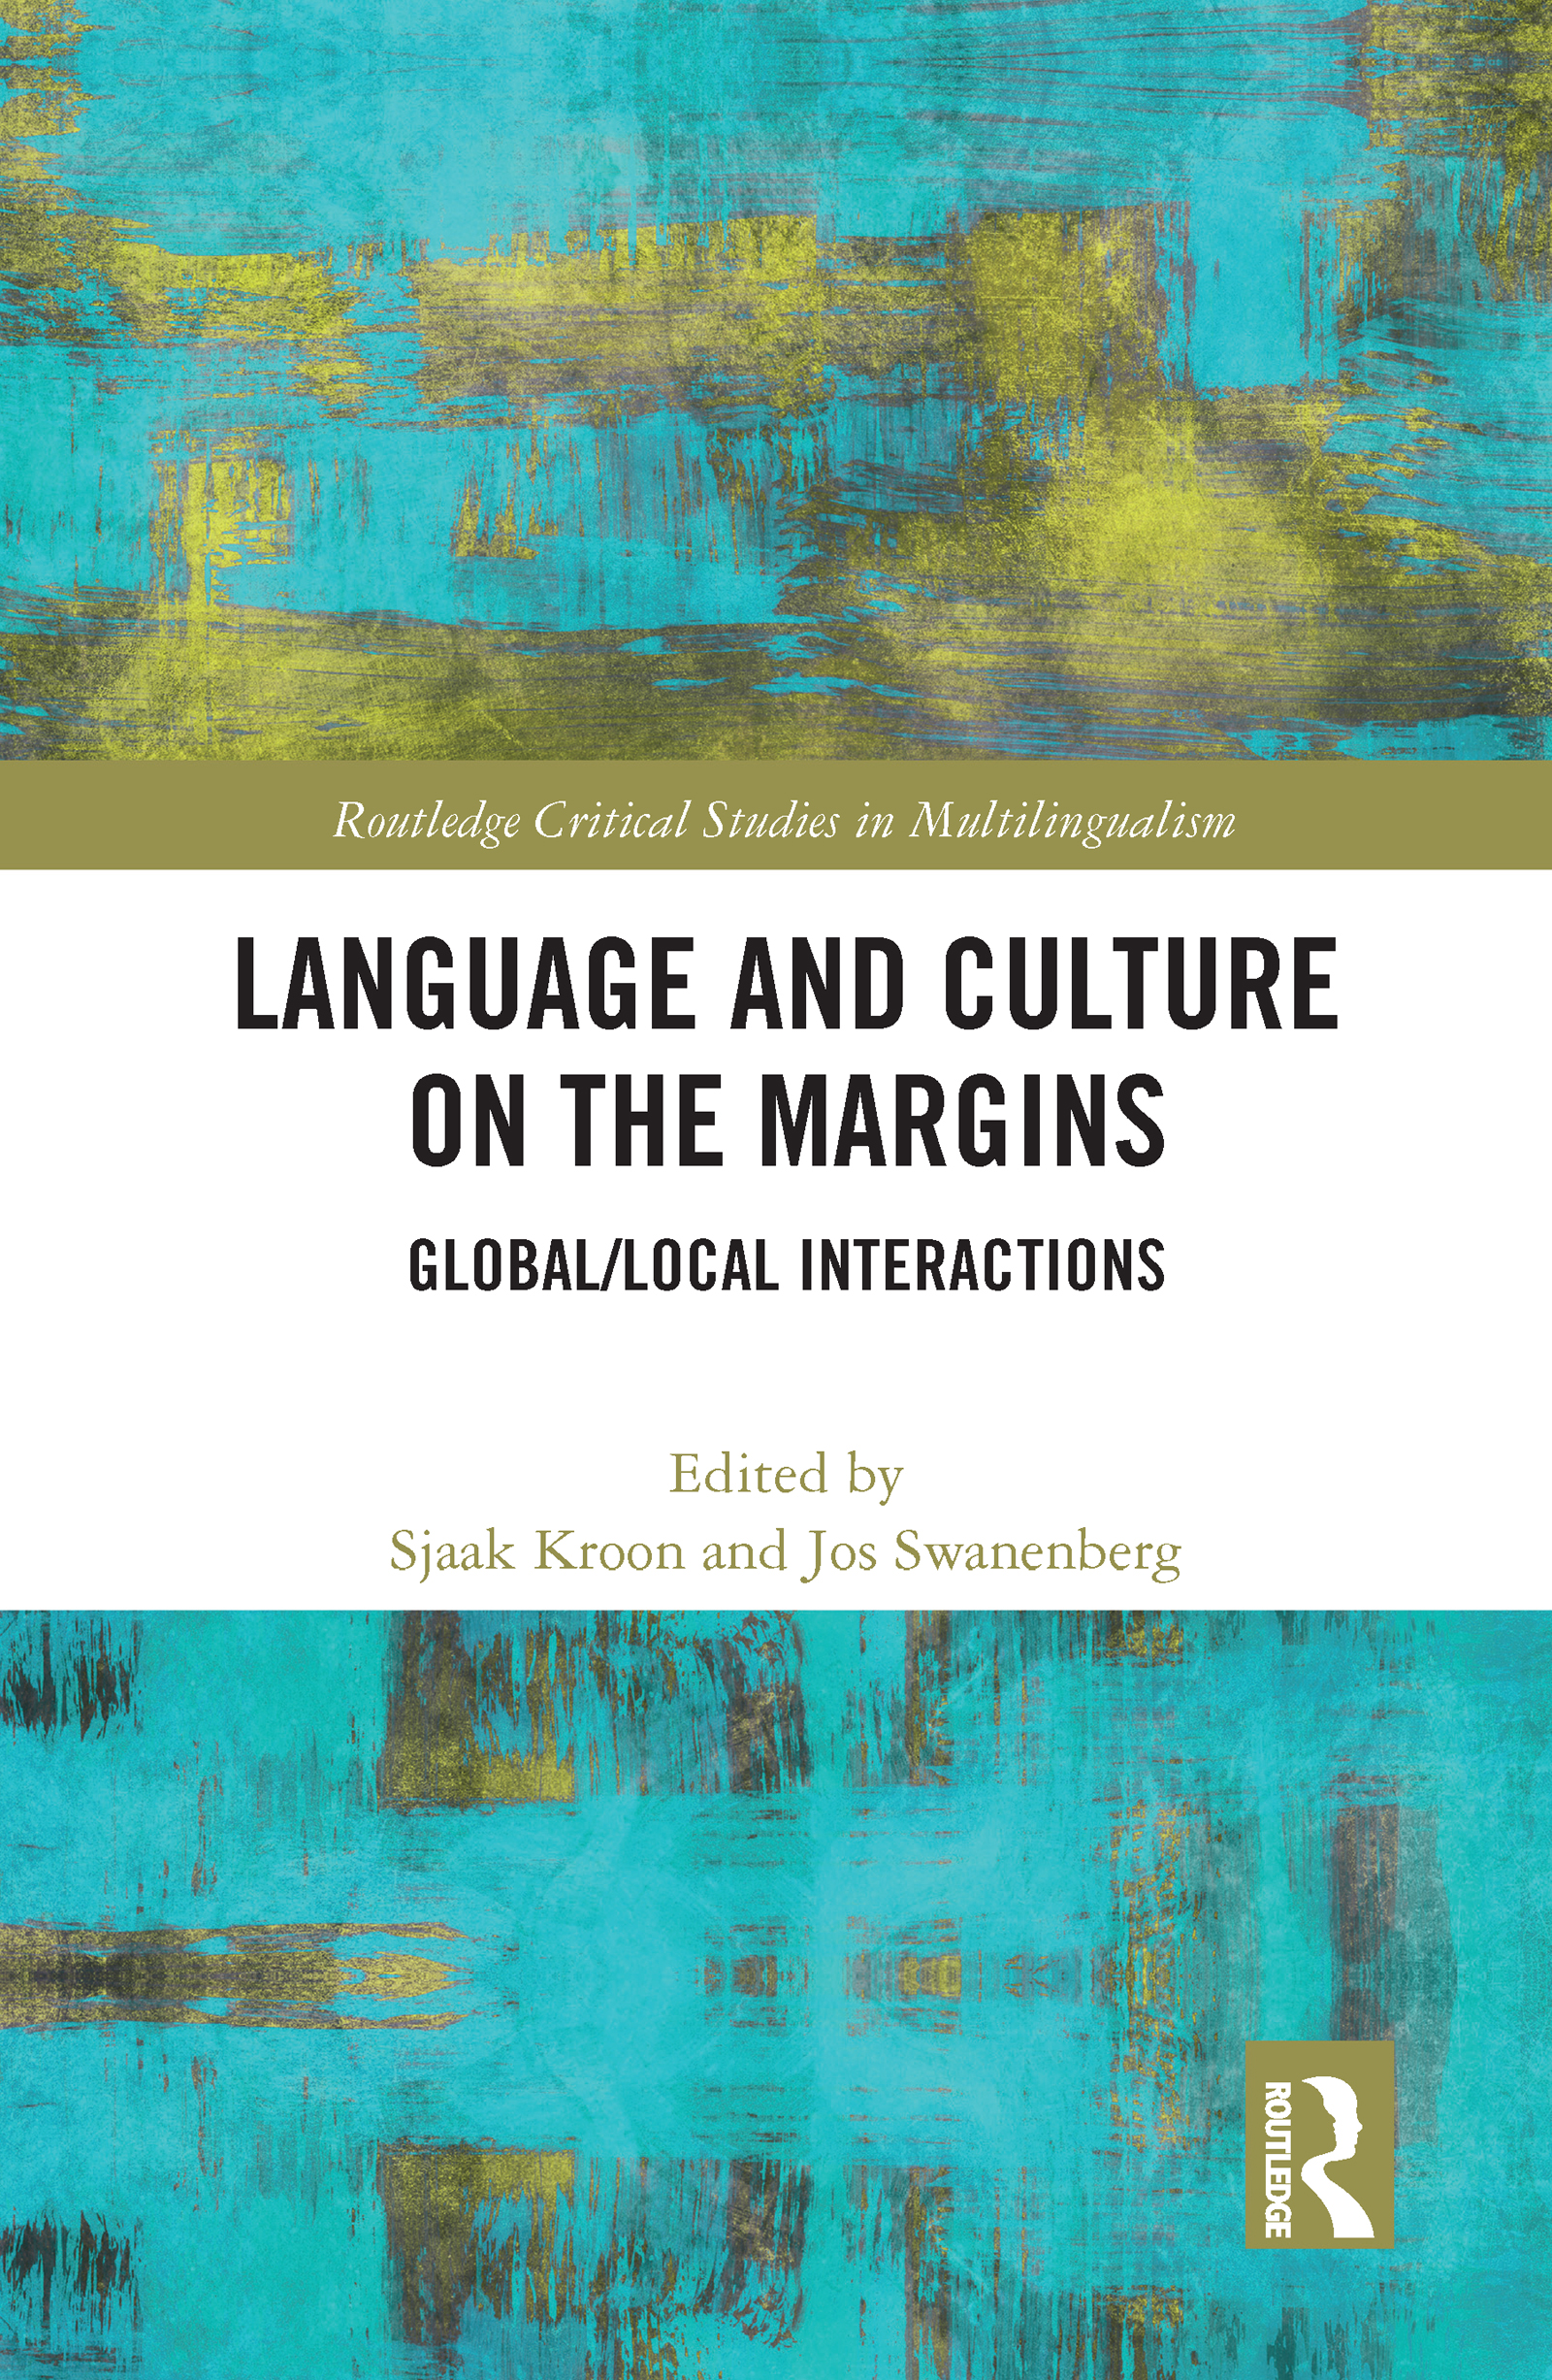 Language and Culture on the Margins